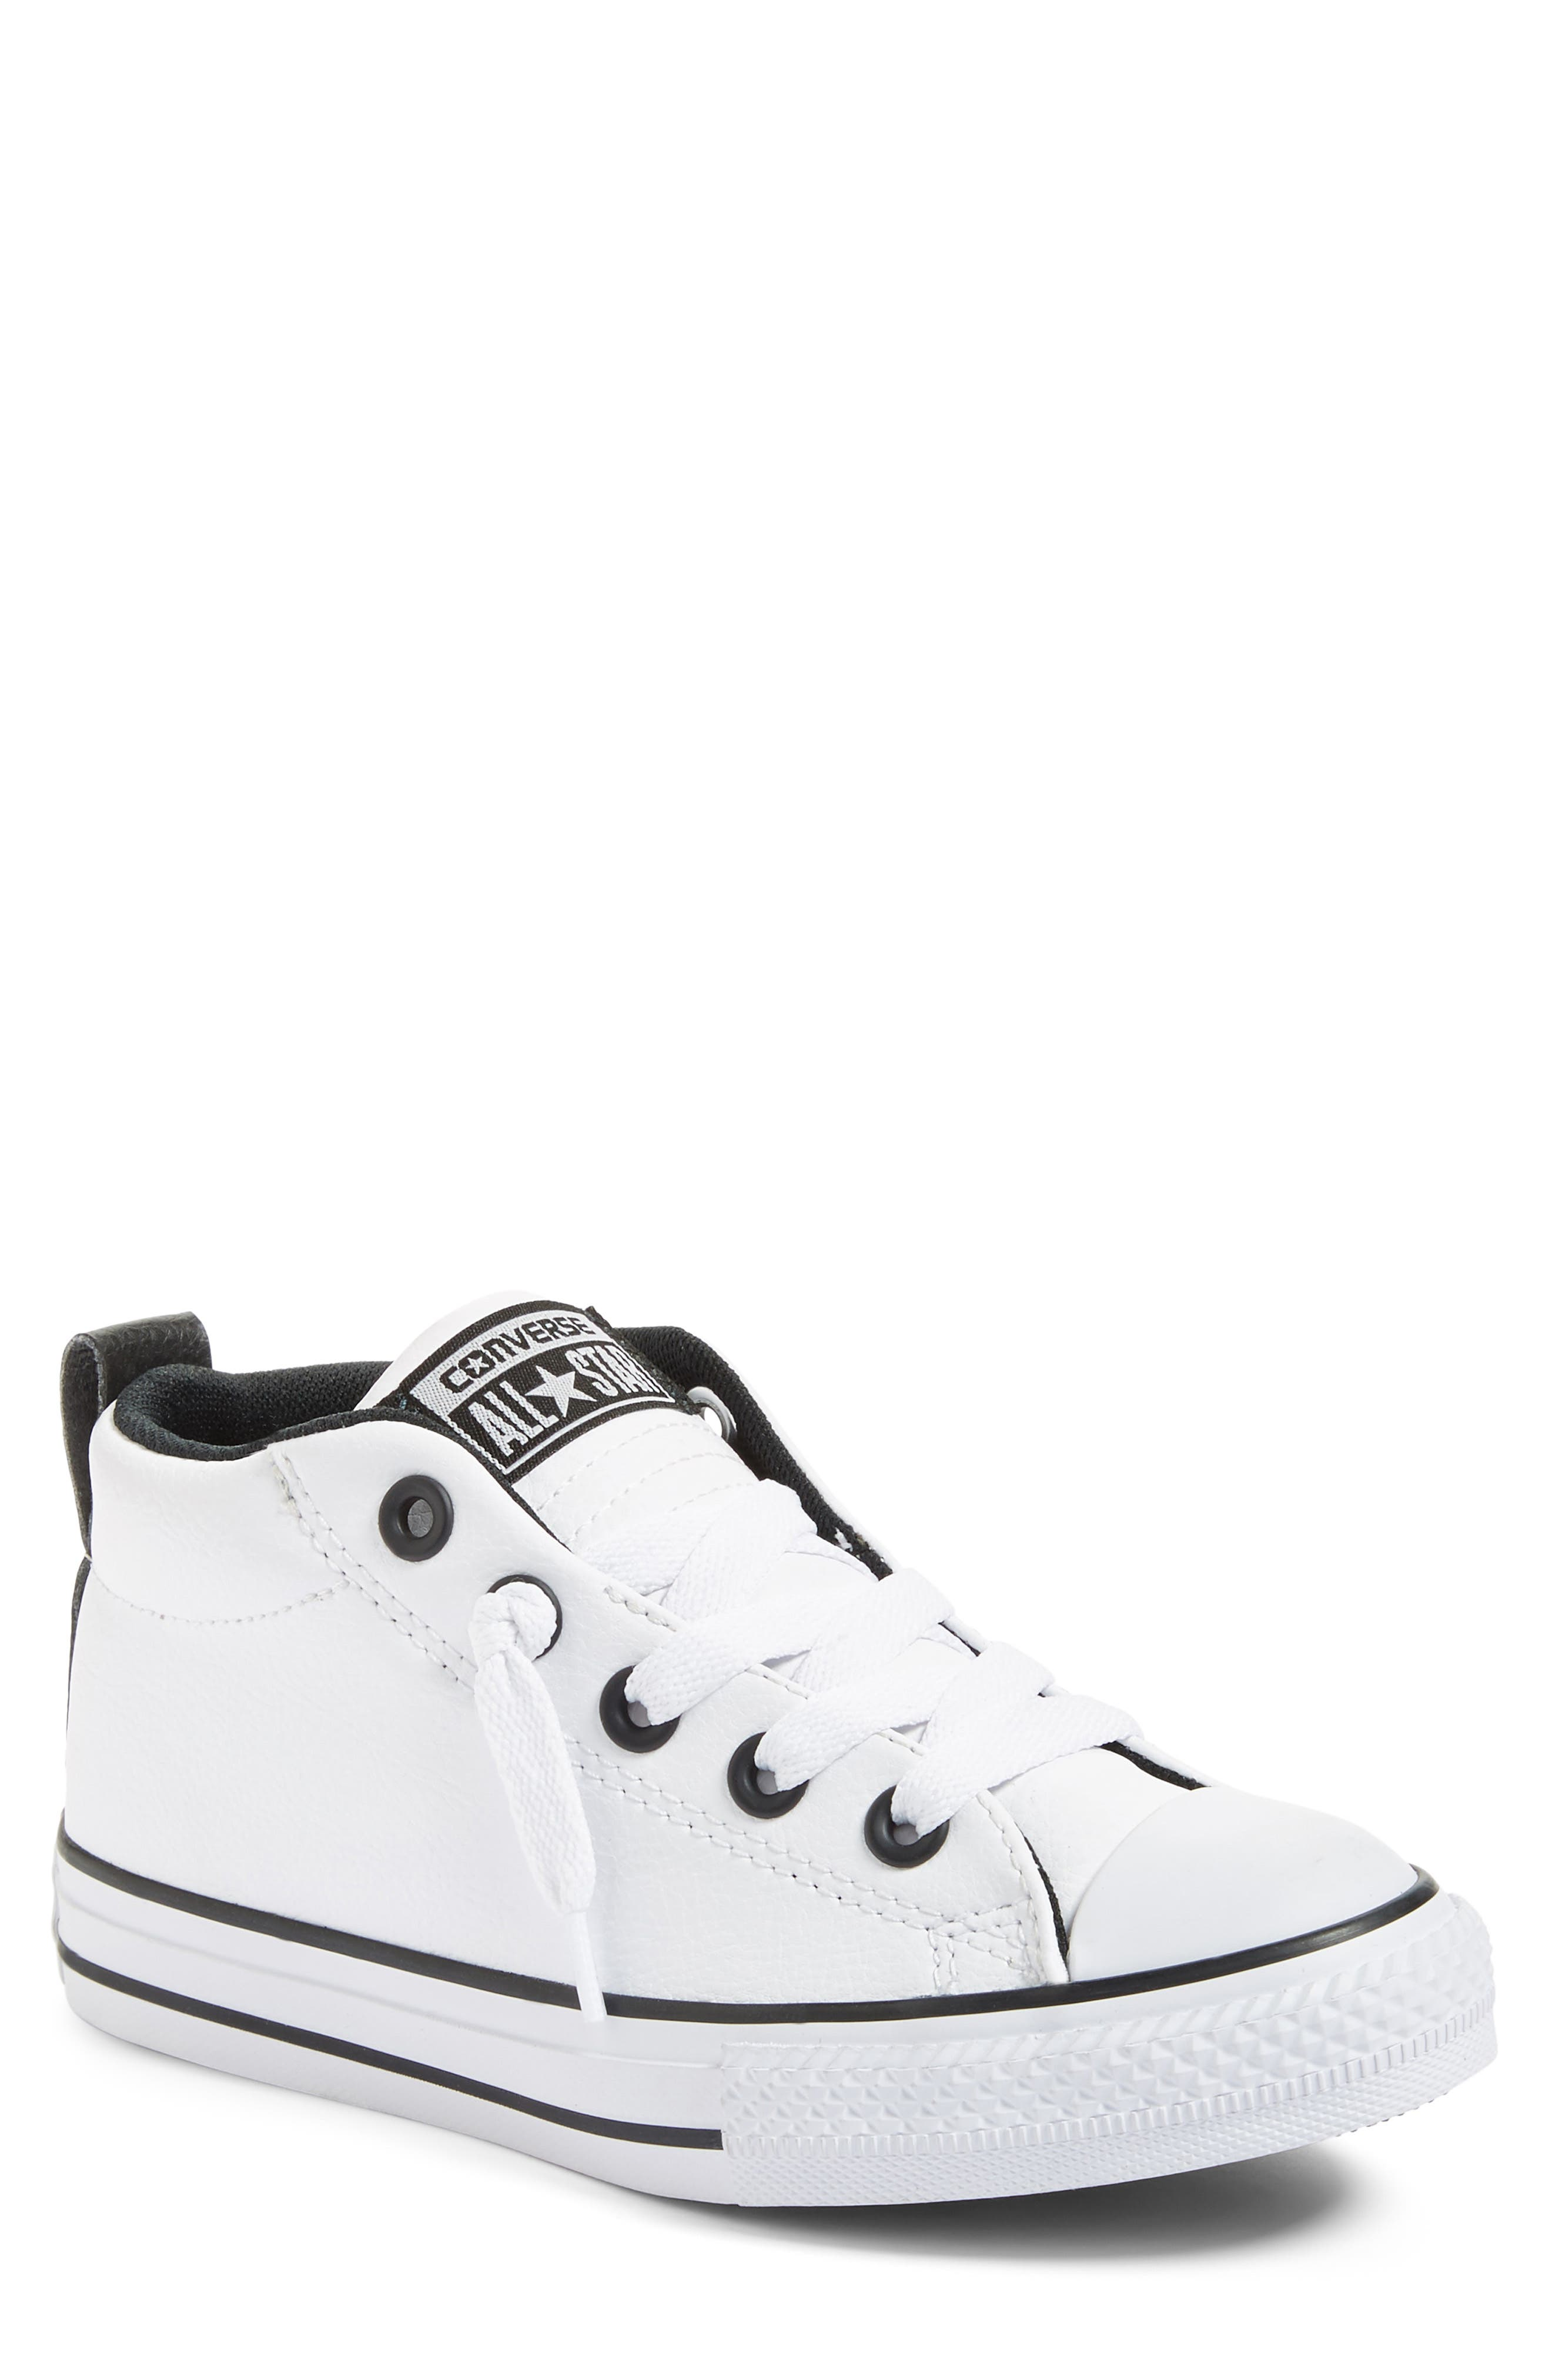 Main Image - Converse Chuck Taylor® All Star® Mid High Sneaker (Toddler, Little Kid & Big Kid)